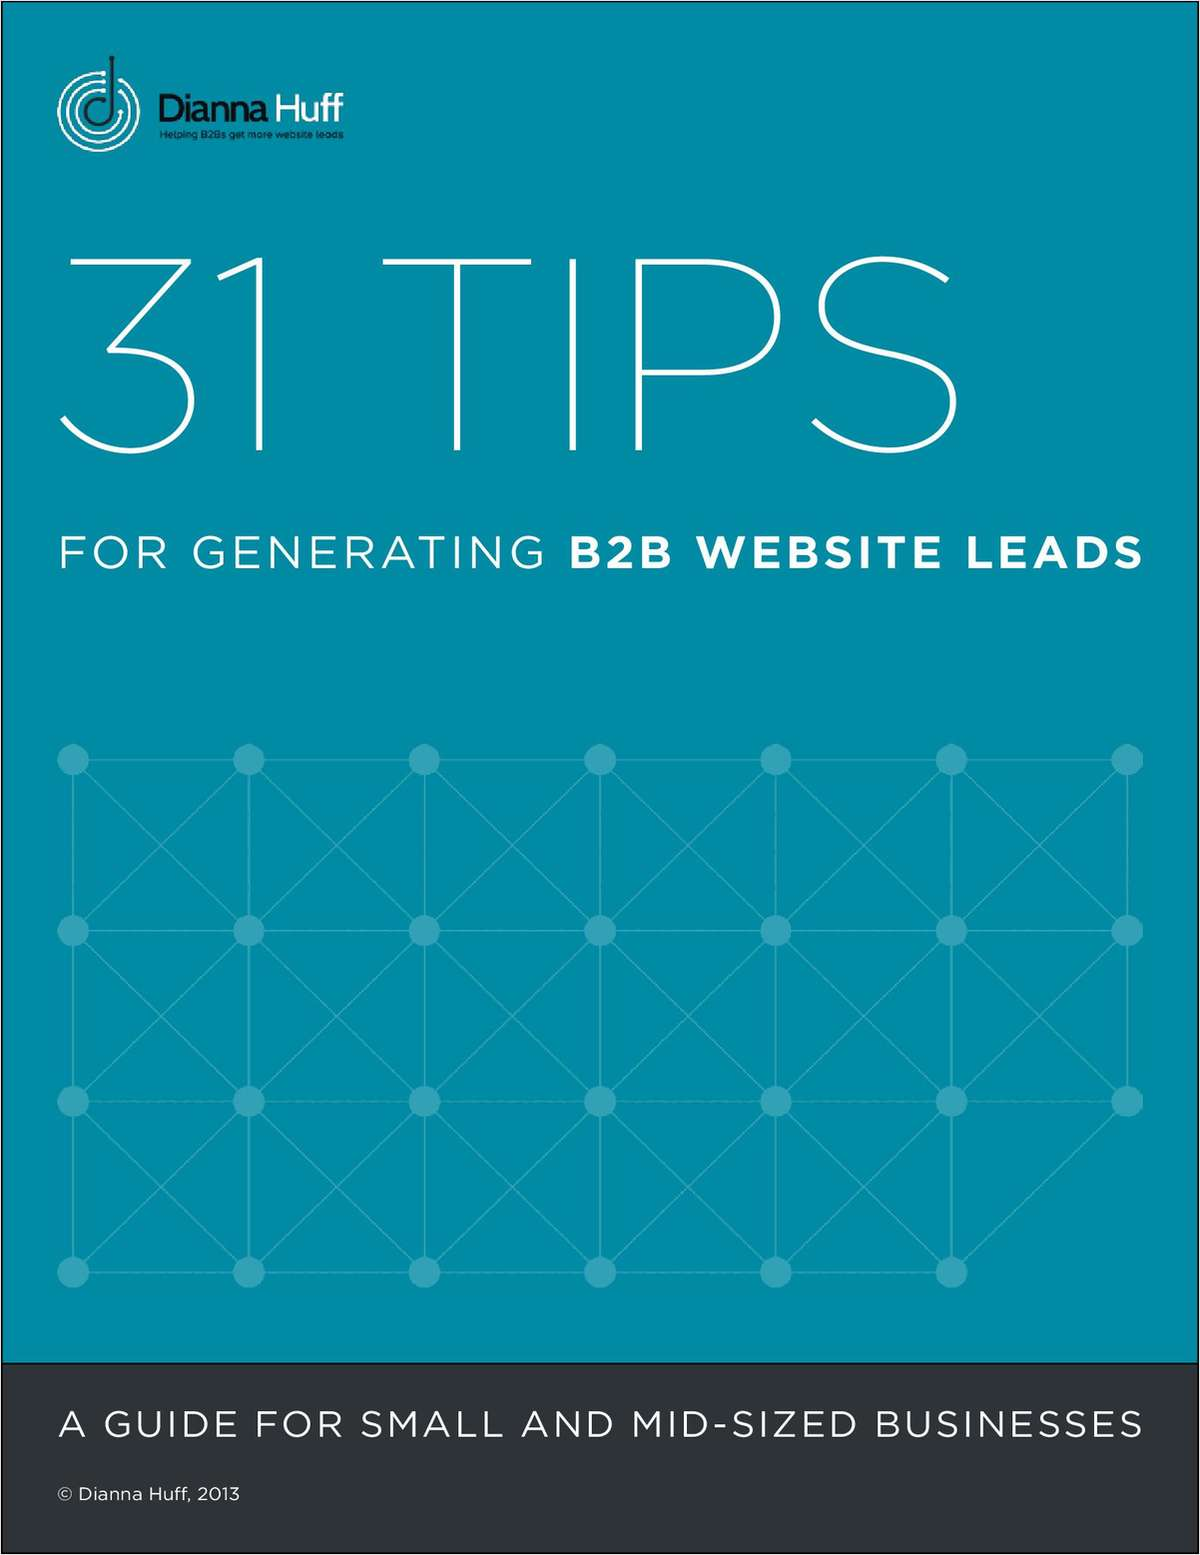 31 Tips For Generating B2B Website Leads